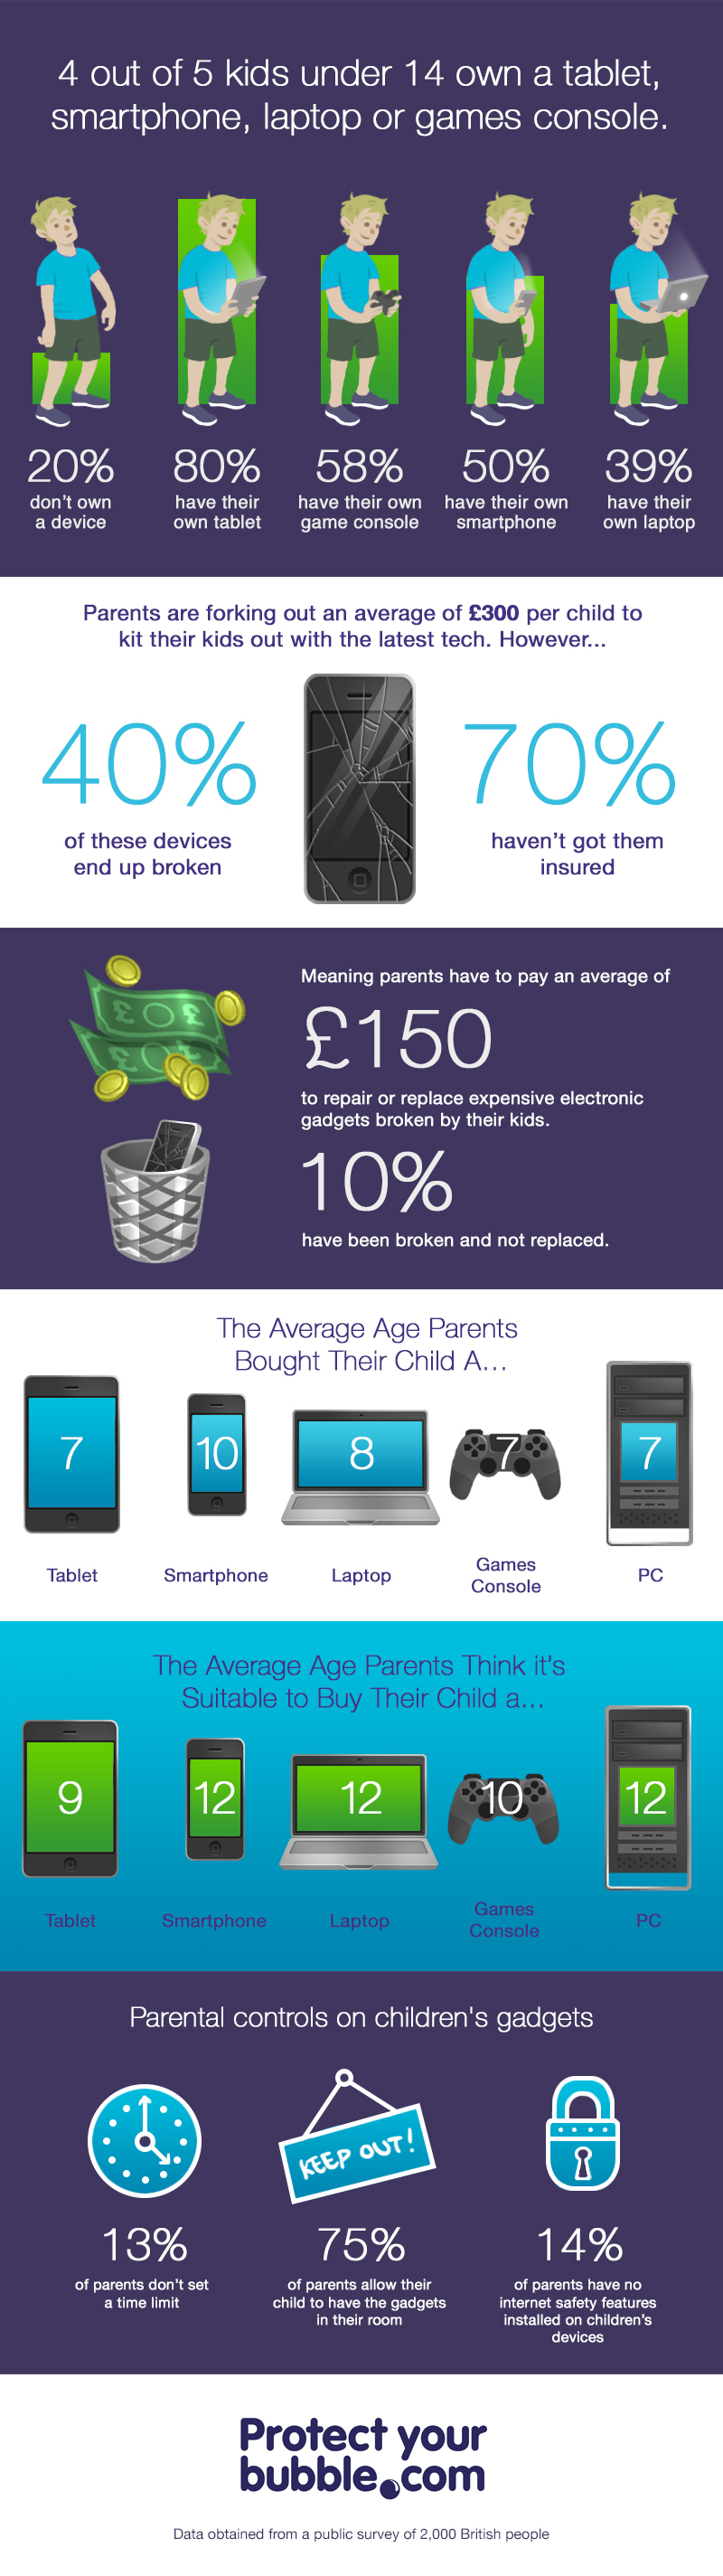 Three quarters of gadgets owned by children aren't insured – despite almost half ending up broken